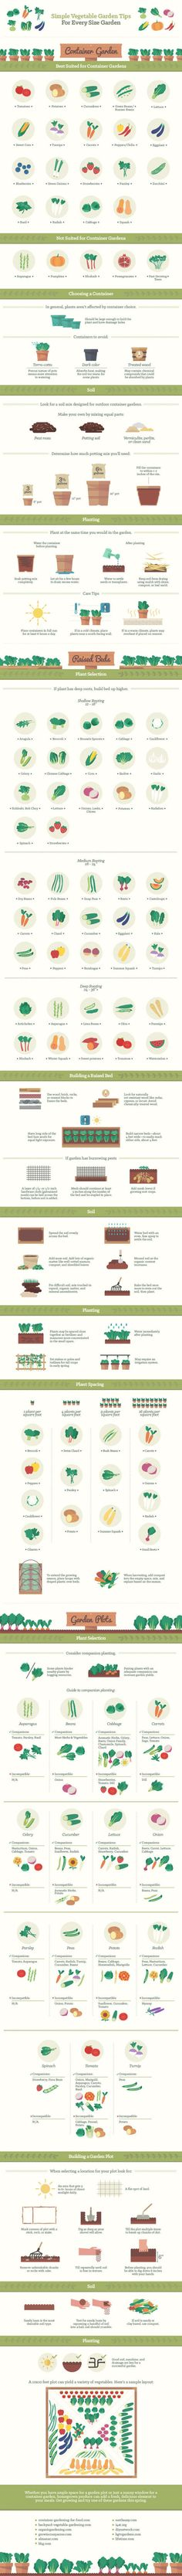 Suitable food plants for all types of gardens. From mentalfloss.com